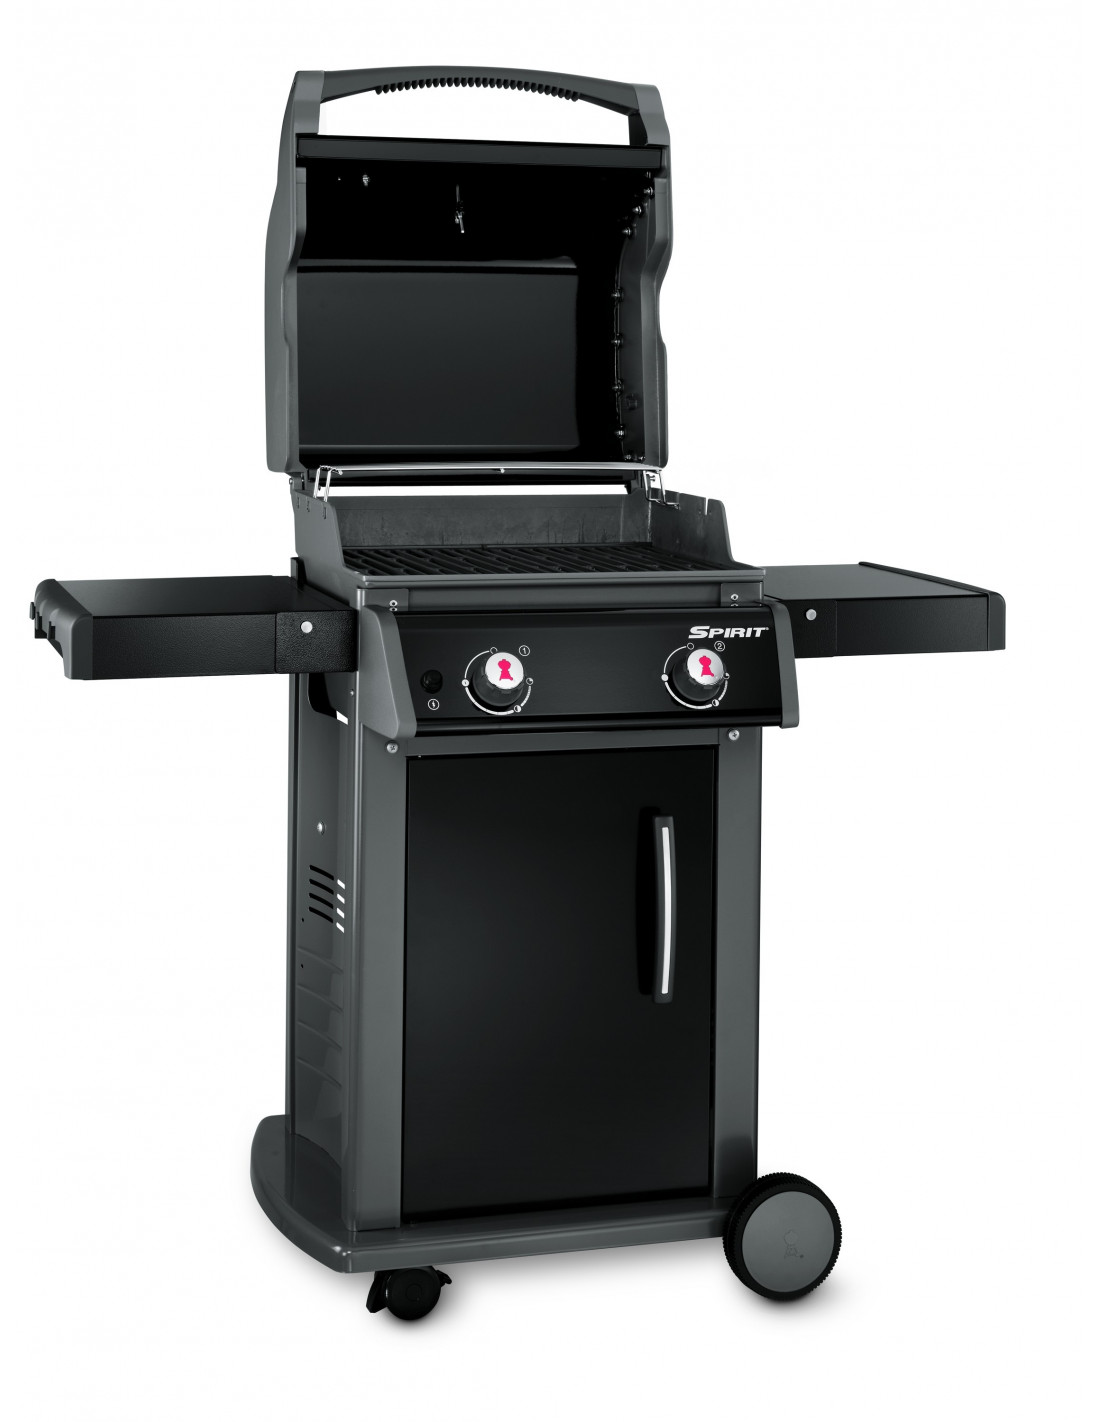 Barbecue weber spirit e310 - Barbecue weber gaz pas cher ...